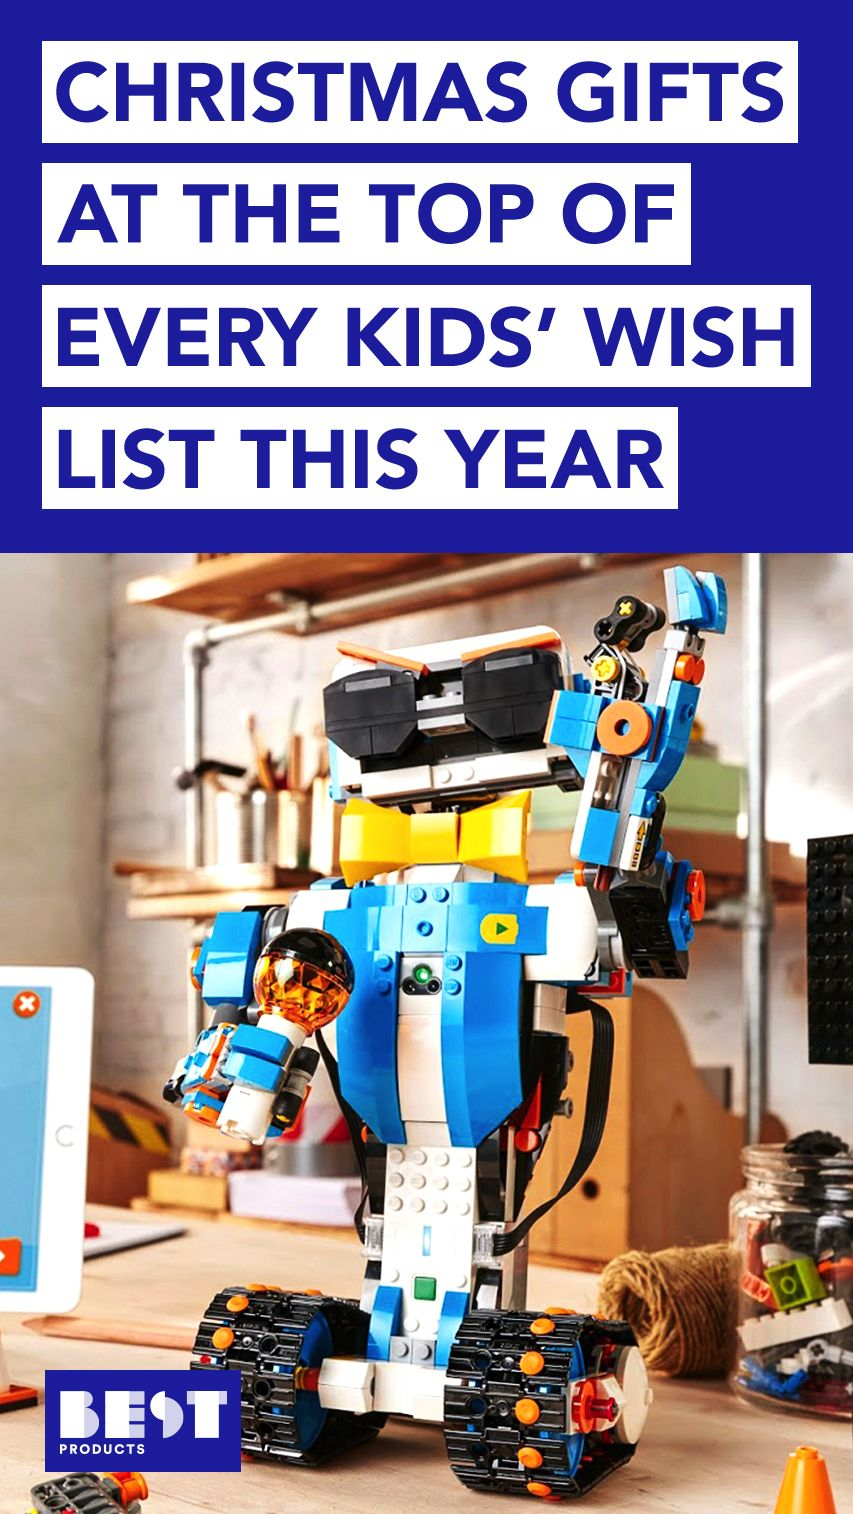 70 Best Christmas Gifts For Kids in 2018 - Great Gift Ideas for Boys ...